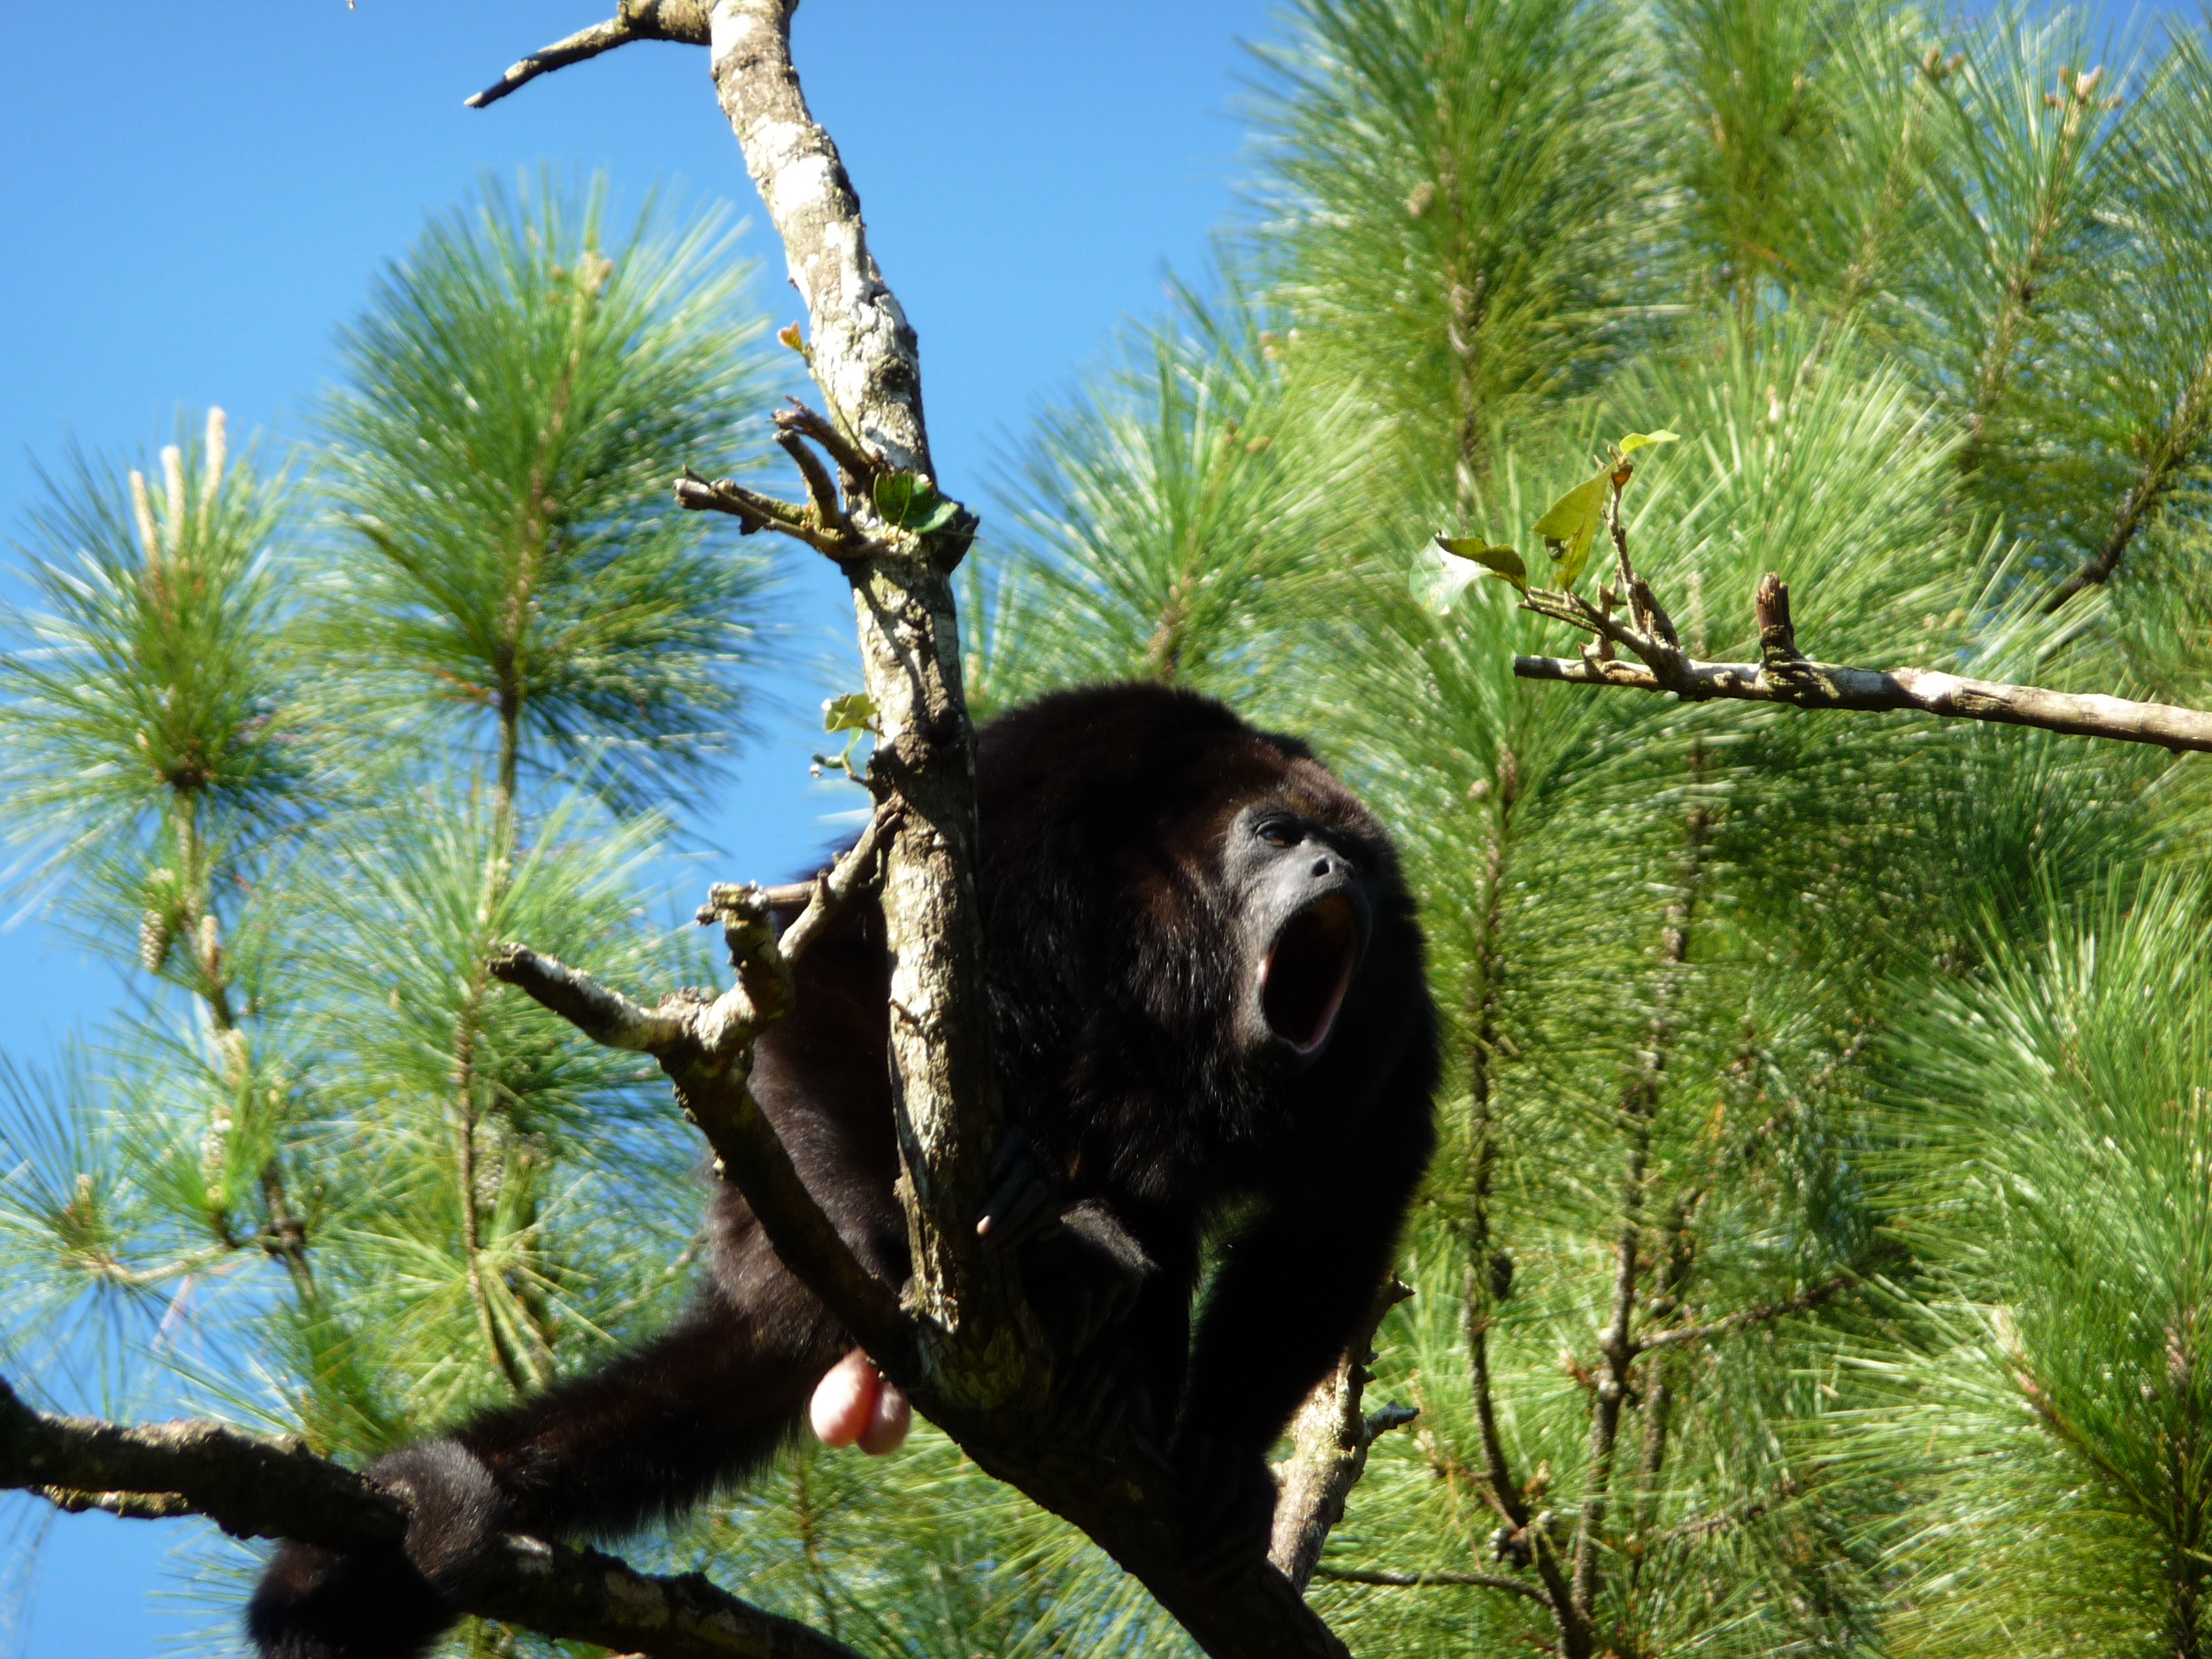 A Mexican Black Howler Monkey calls to other nearby males